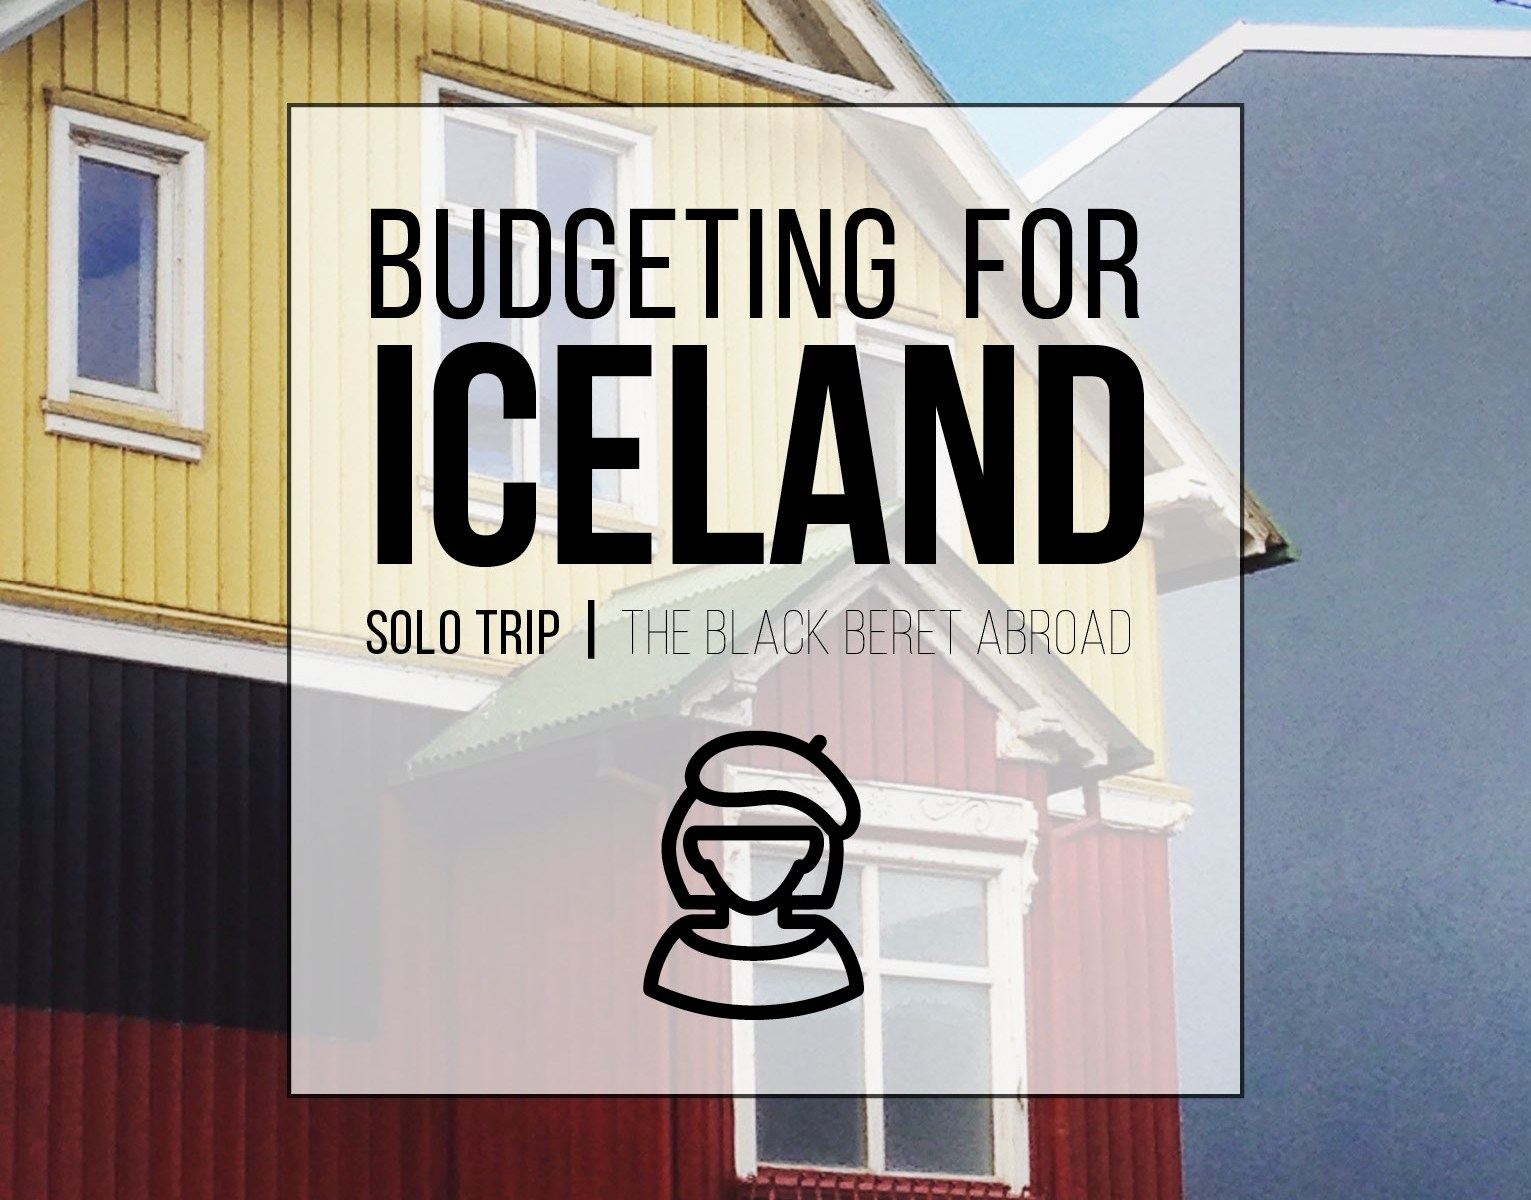 Photo of colourful houses in Iceland. Image text: budgeting for Iceland, solo trip, the black beret abroad.